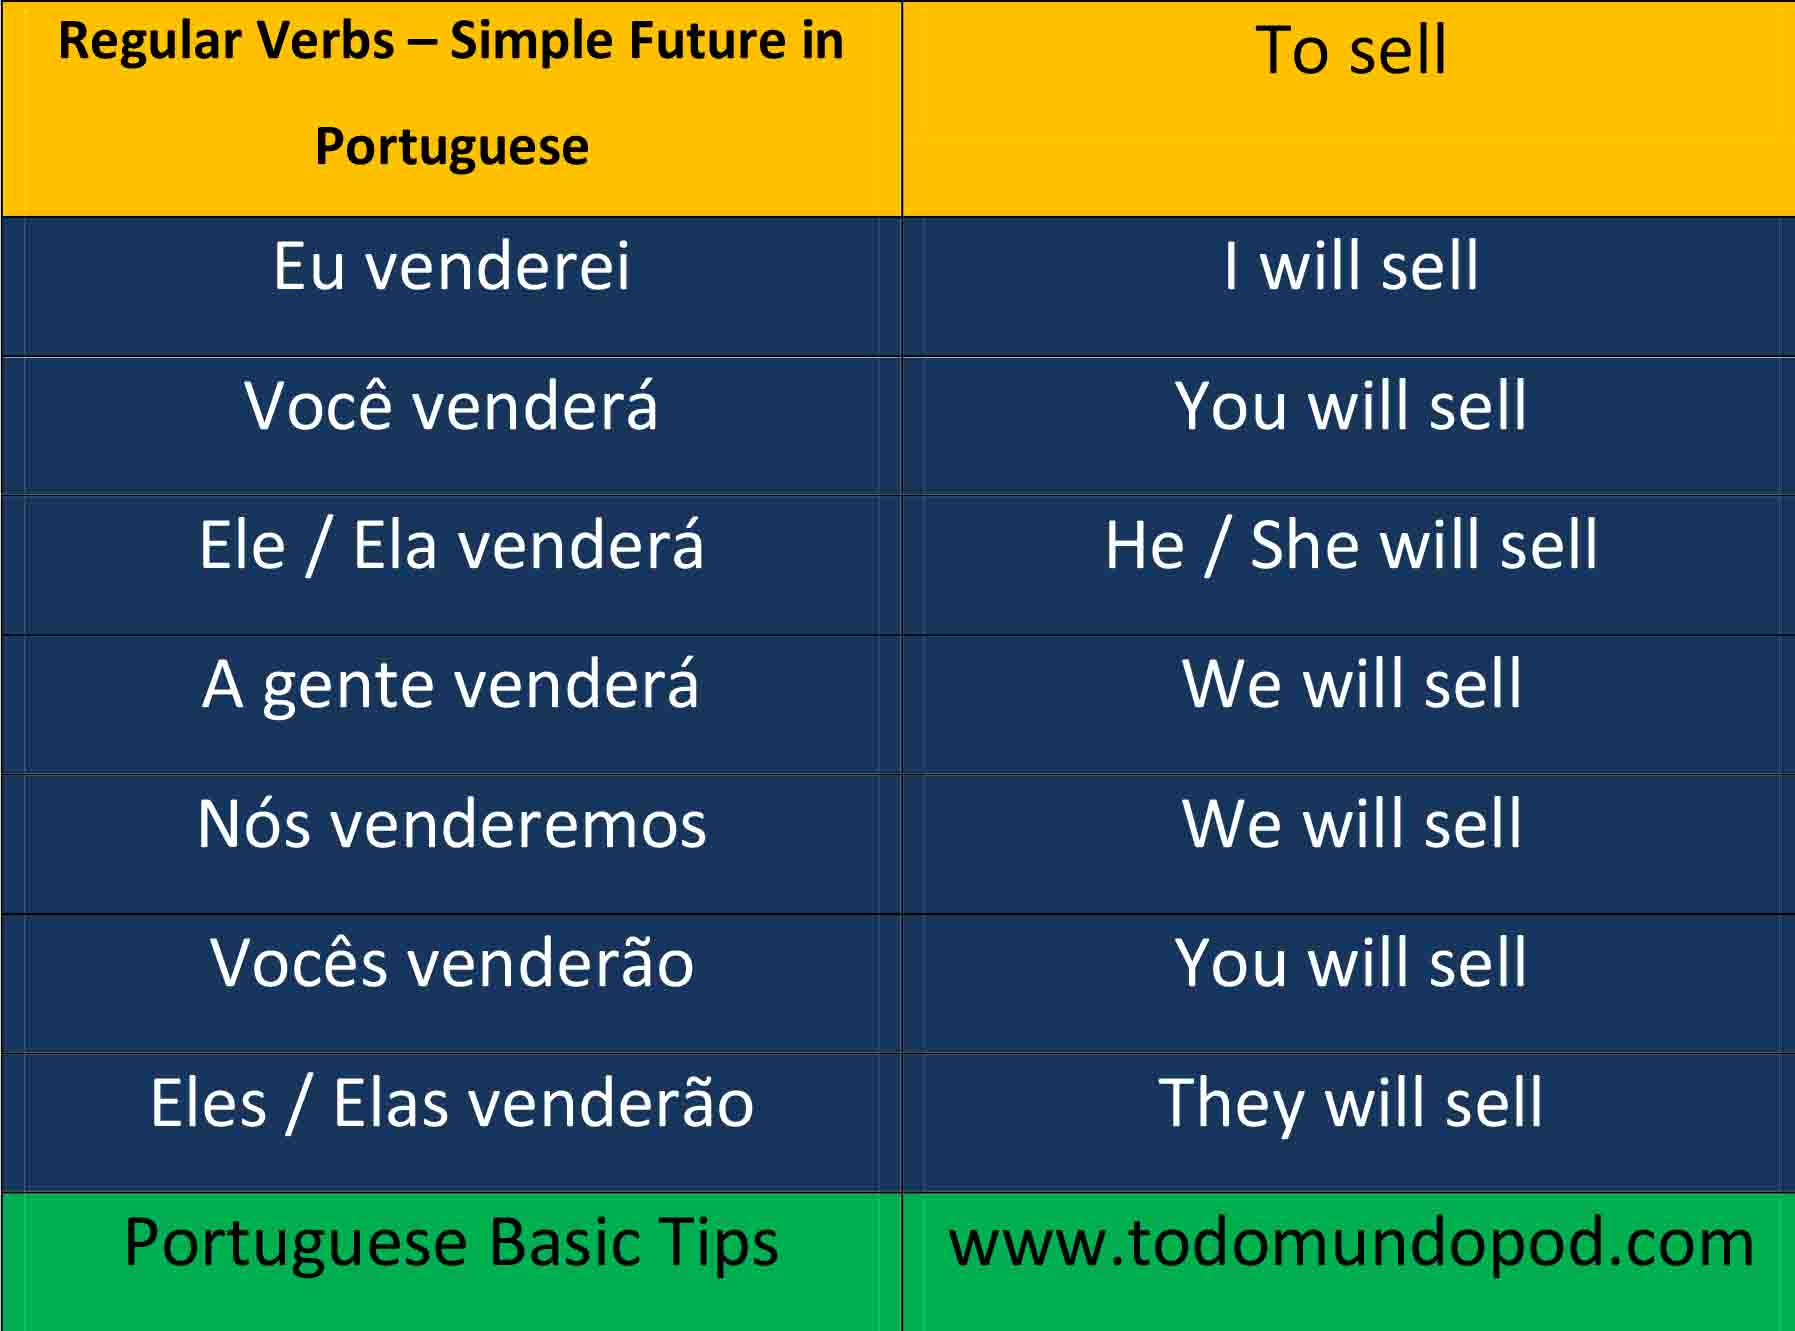 Portuguese future tense - Vender verb conjugation